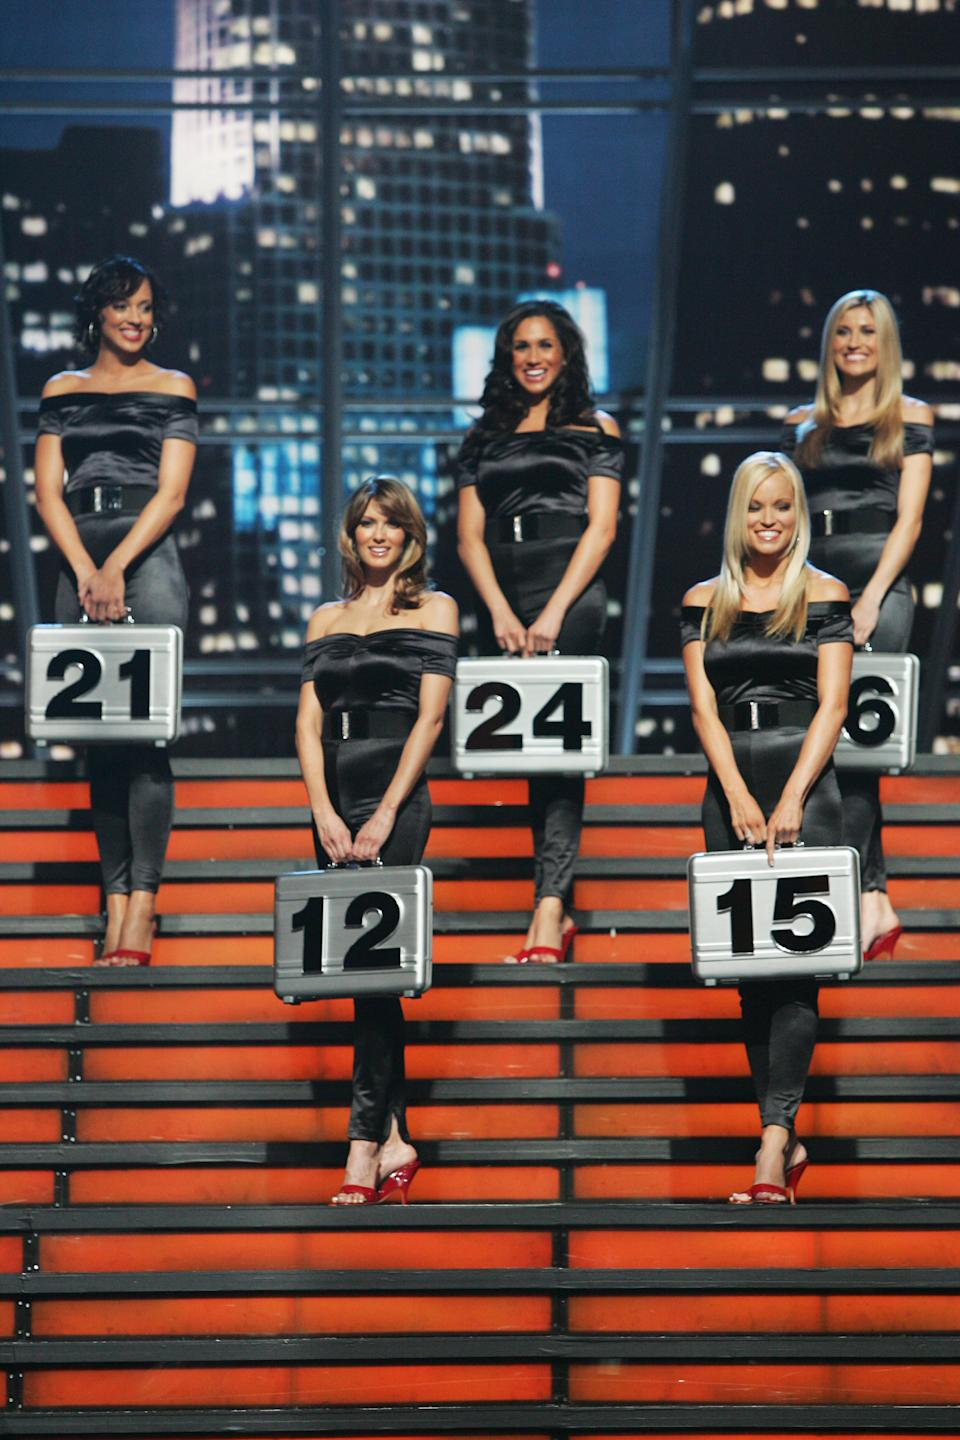 DEAL OR NO DEAL -- Episode 241 -- Pictured: (l-r, number order) Jill Manas (12), Brooke Long (15), Tameka Jacobs (21), Meghan Markle (24), Lindsay Clubine (26) -- (Photo by: Trae Patton/NBCU Photo Bank/NBCUniversal via Getty Images via Getty Images)